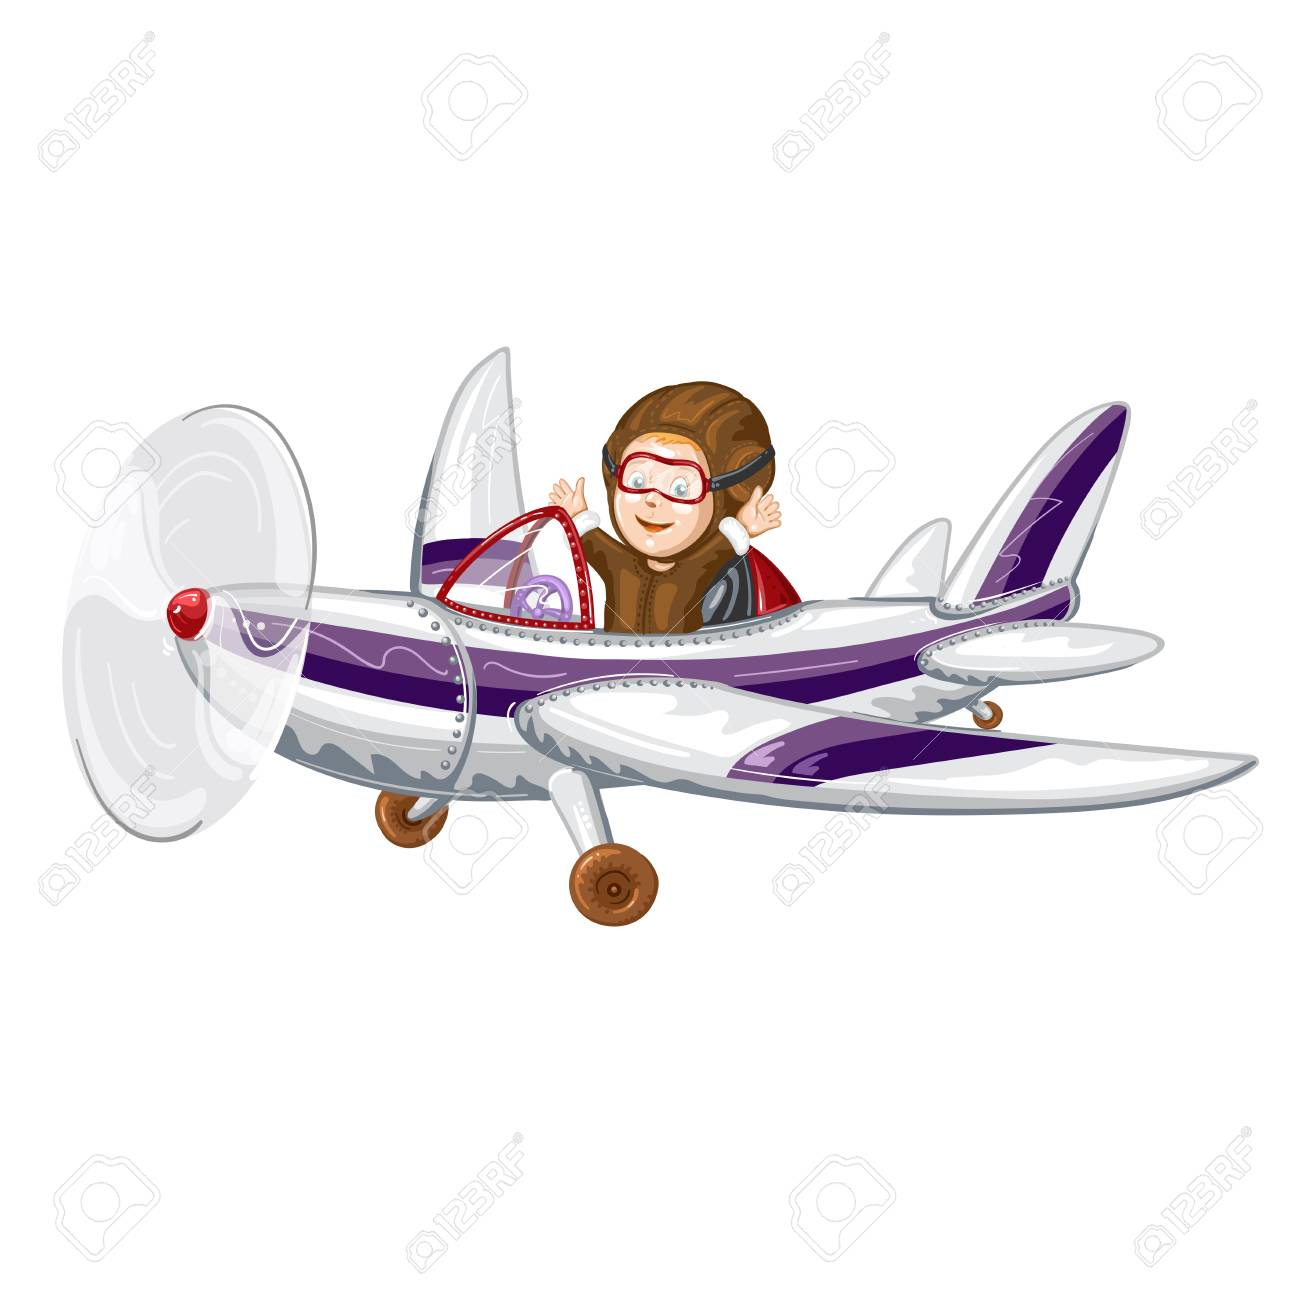 Pilot Flying The Plane In Cartoon Illustration Royalty Free